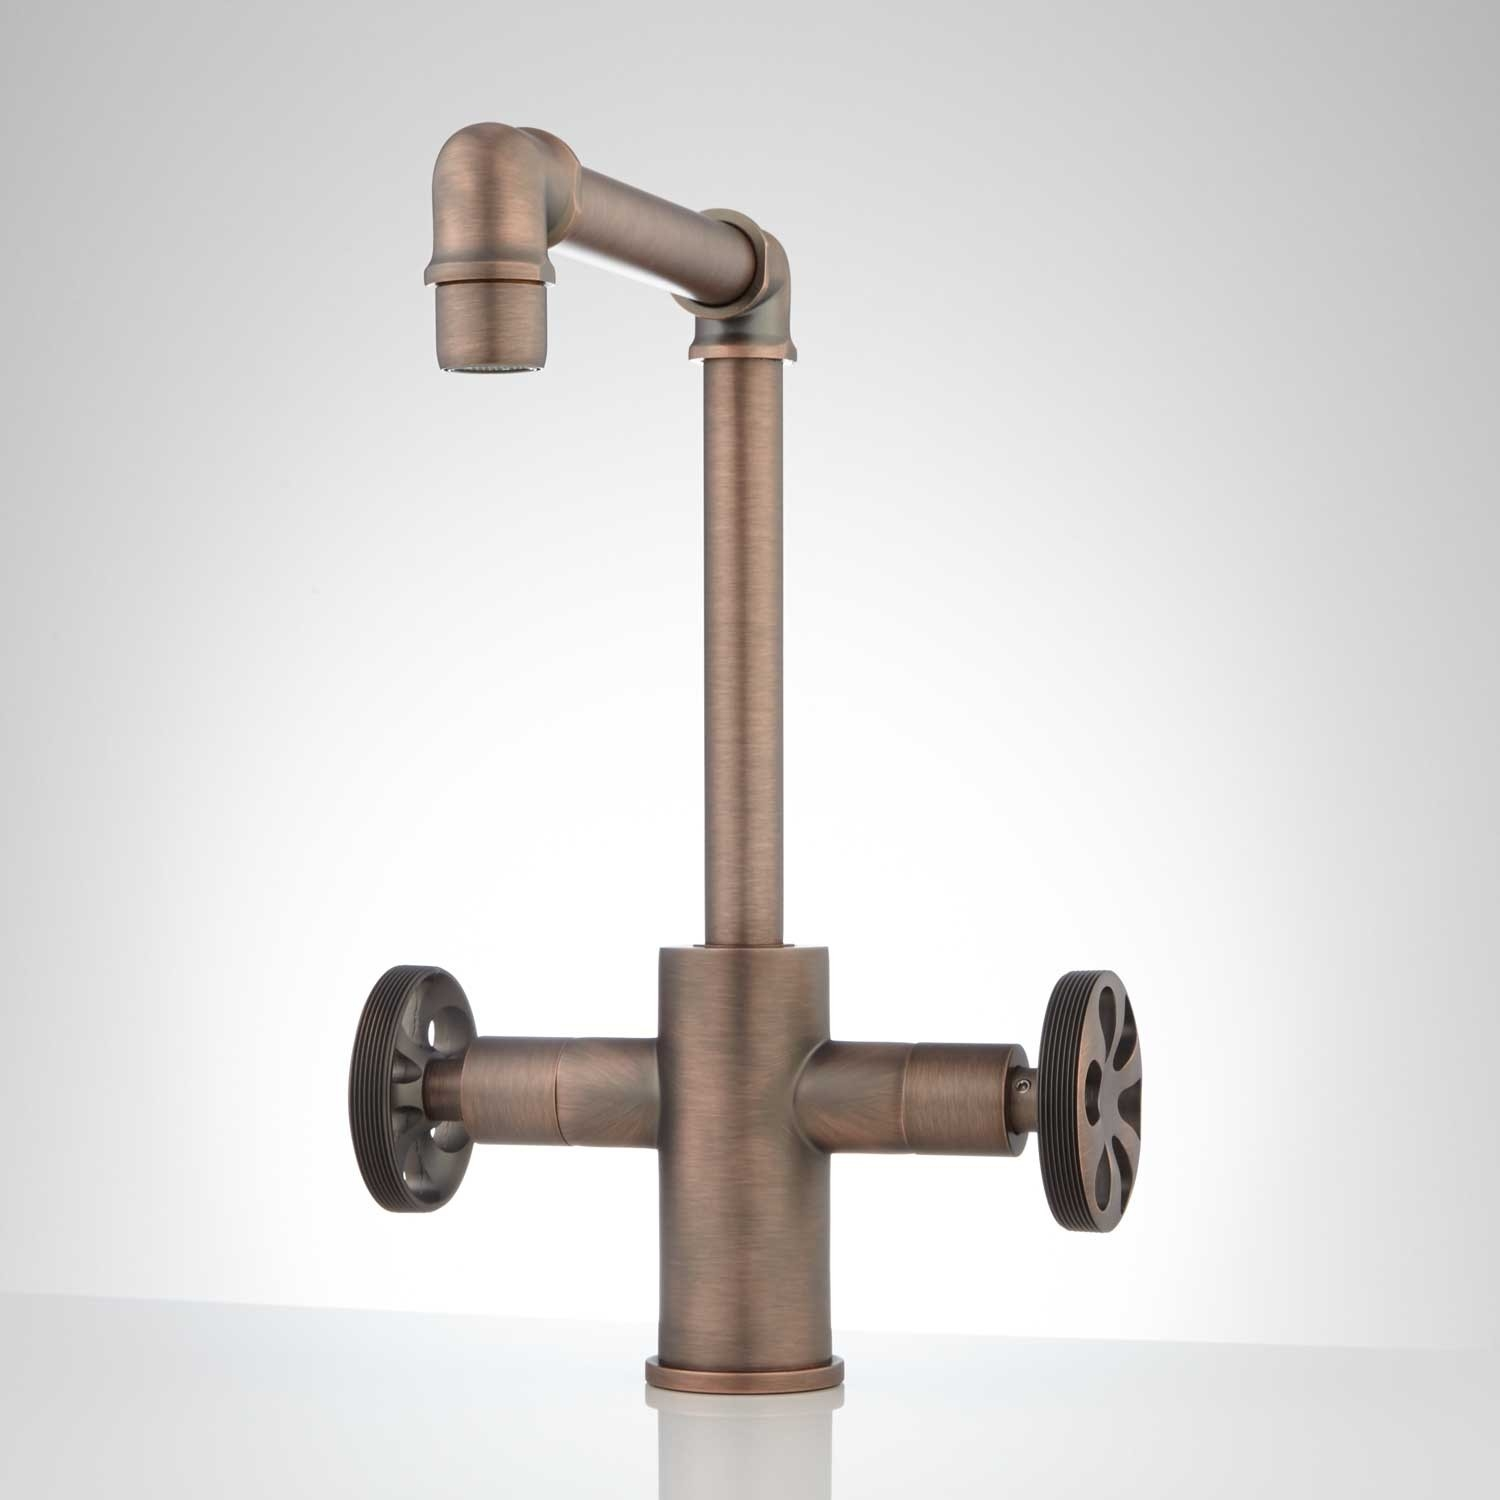 Ideas, edison single hole dual handle brass bathroom faucet with pop up with dimensions 1500 x 1500  .